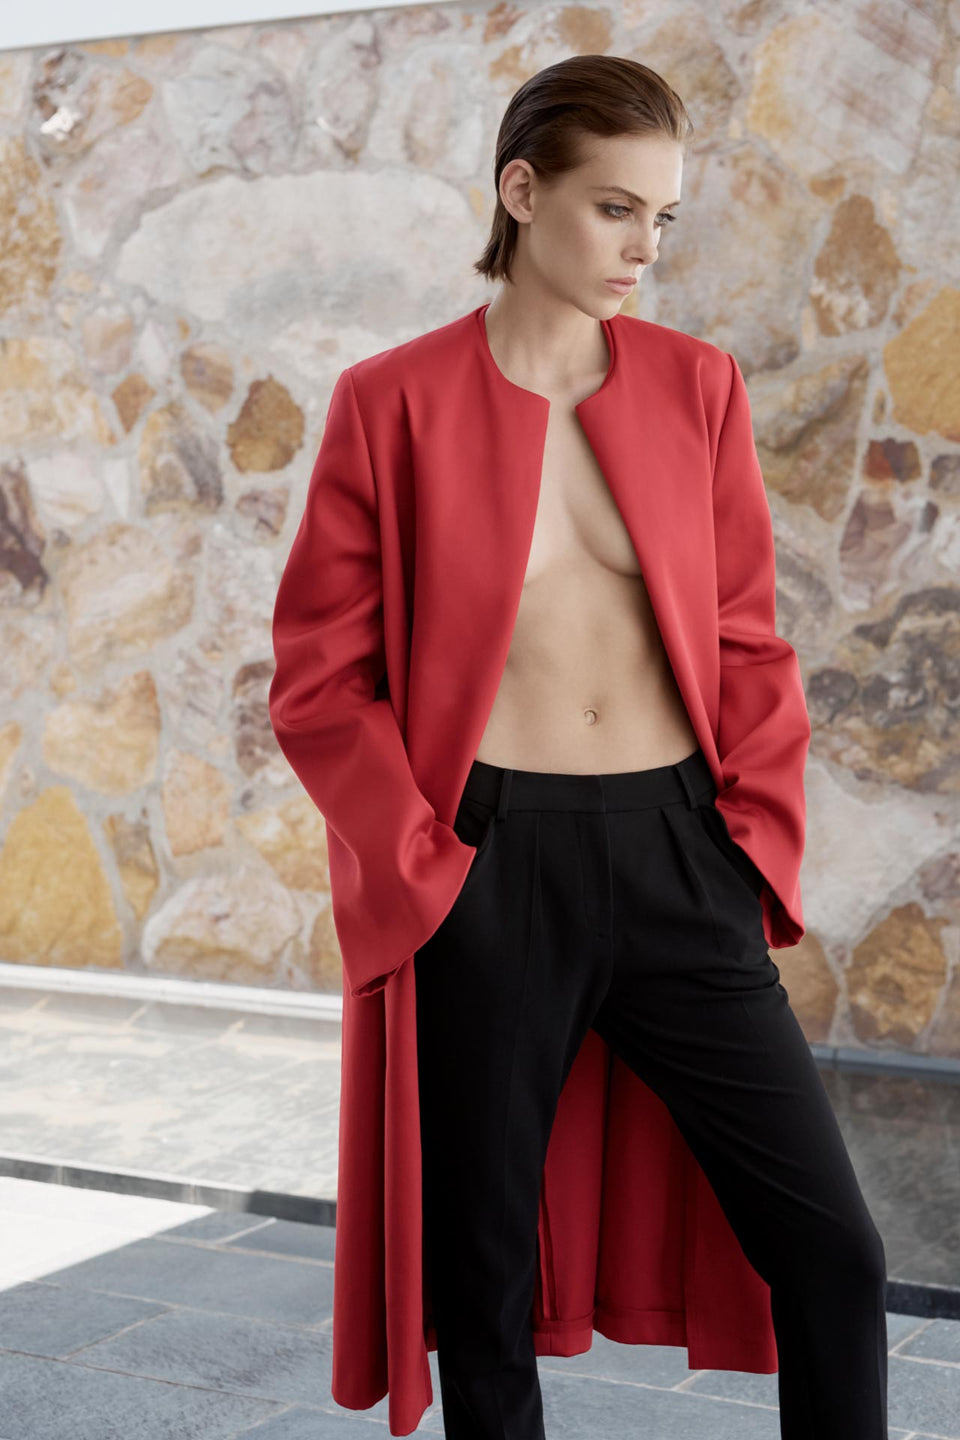 CARL KAPP AW2019 collection in Sydney Australia | Proteus Red Coat